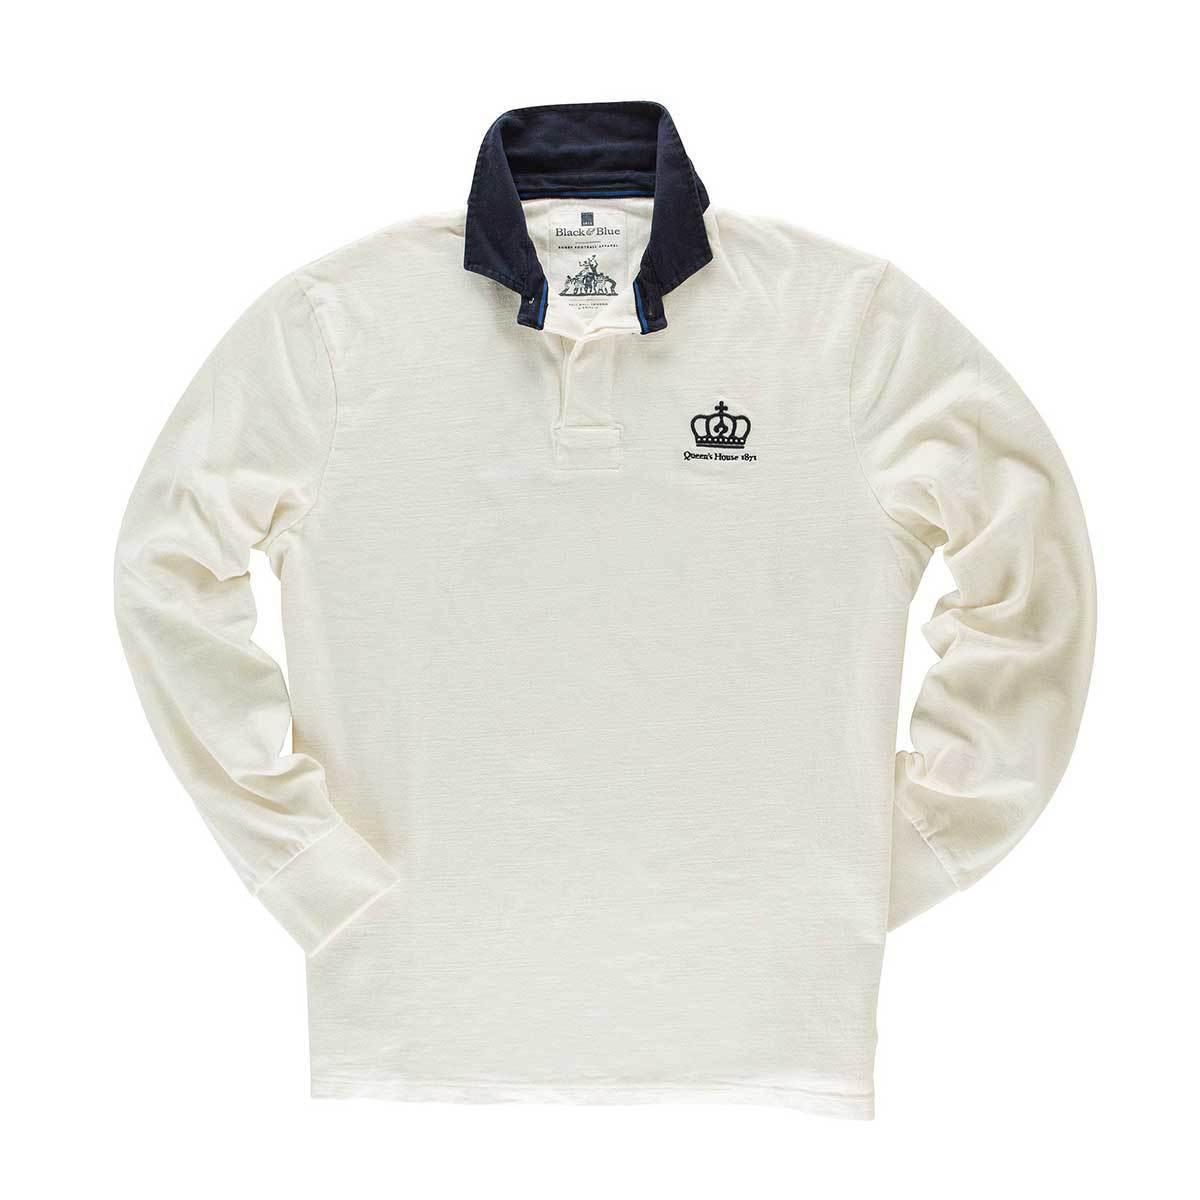 Queen's House 1871 Rugby Shirt